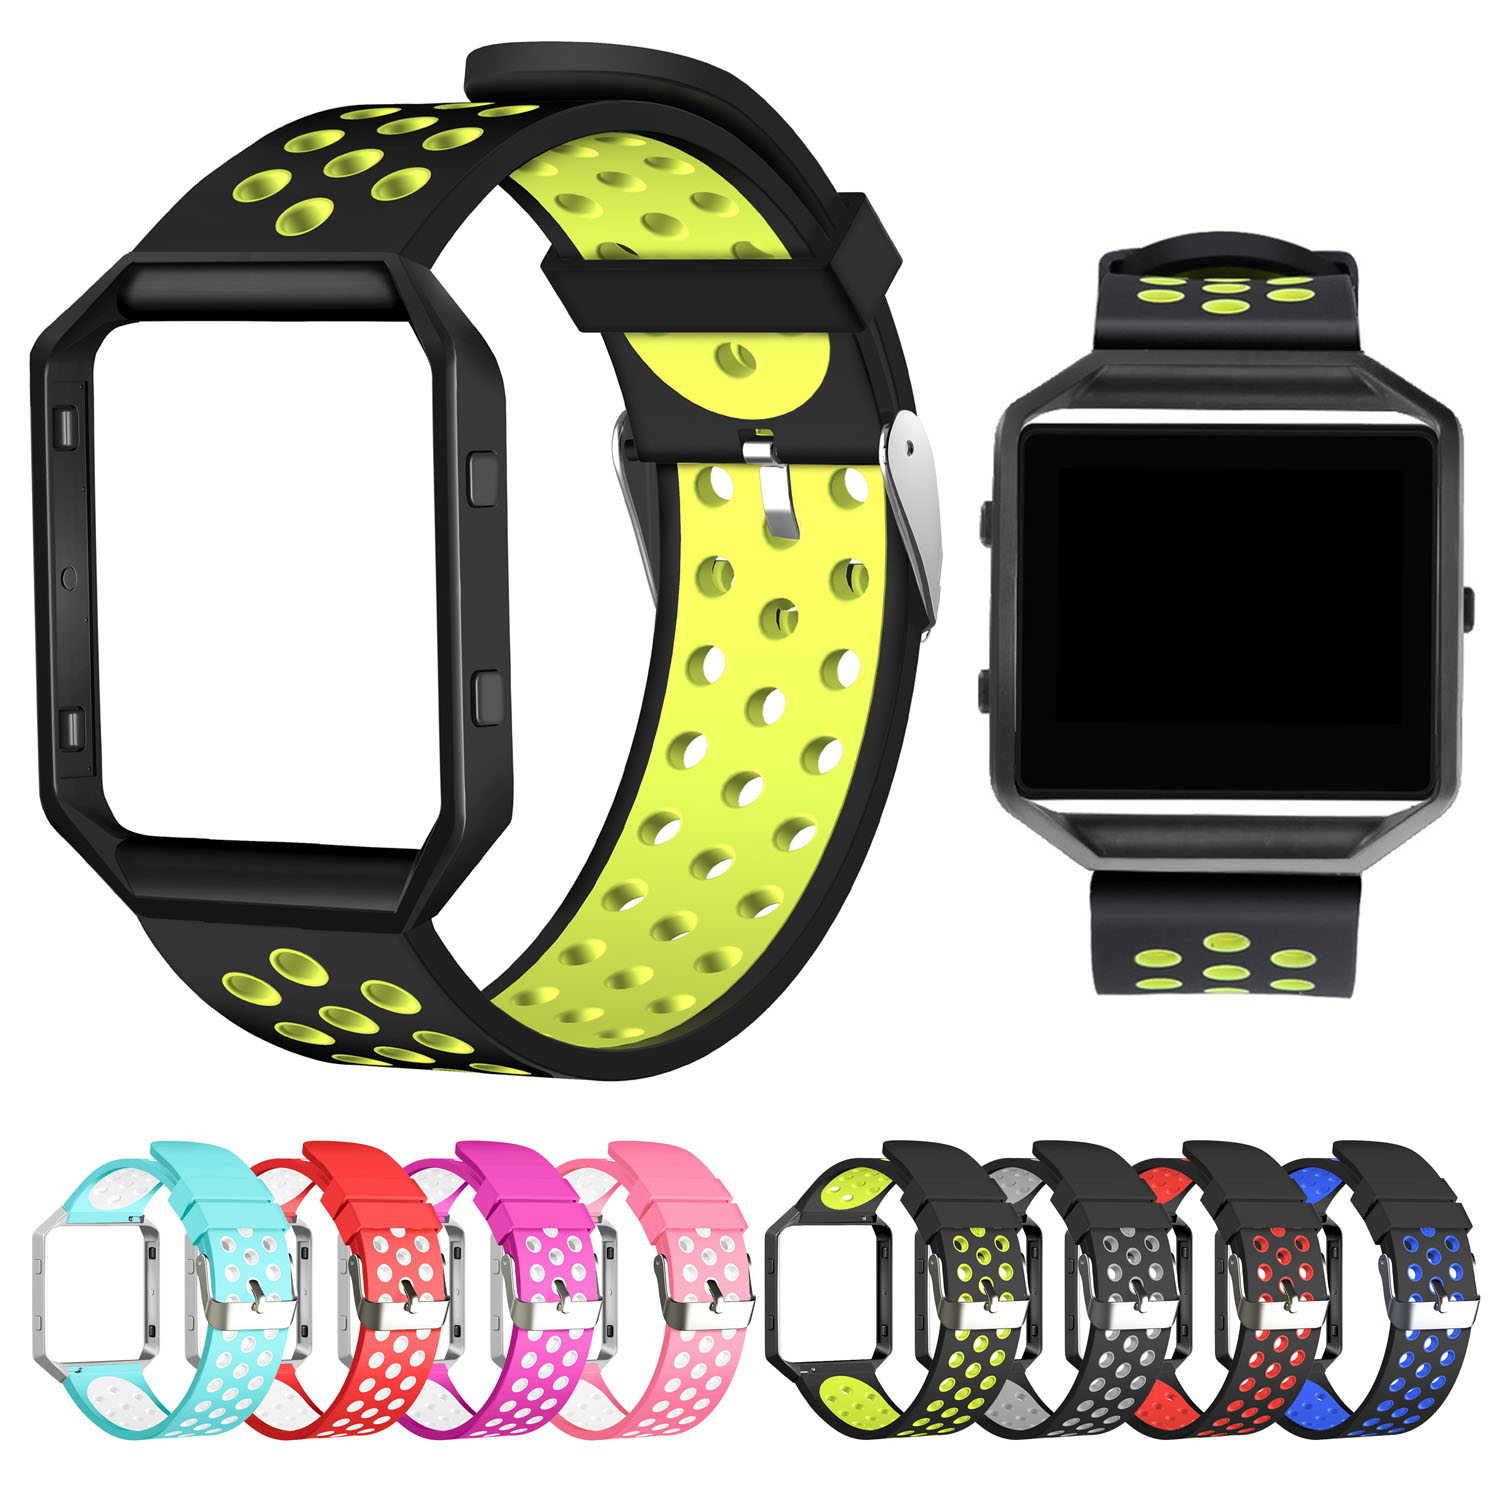 Silver / Black Metal Frame Case Cover and Sport Soft Silicone Strap for Fitbit Blaze Watch Band Wristband Bracelet 23mm цена и фото